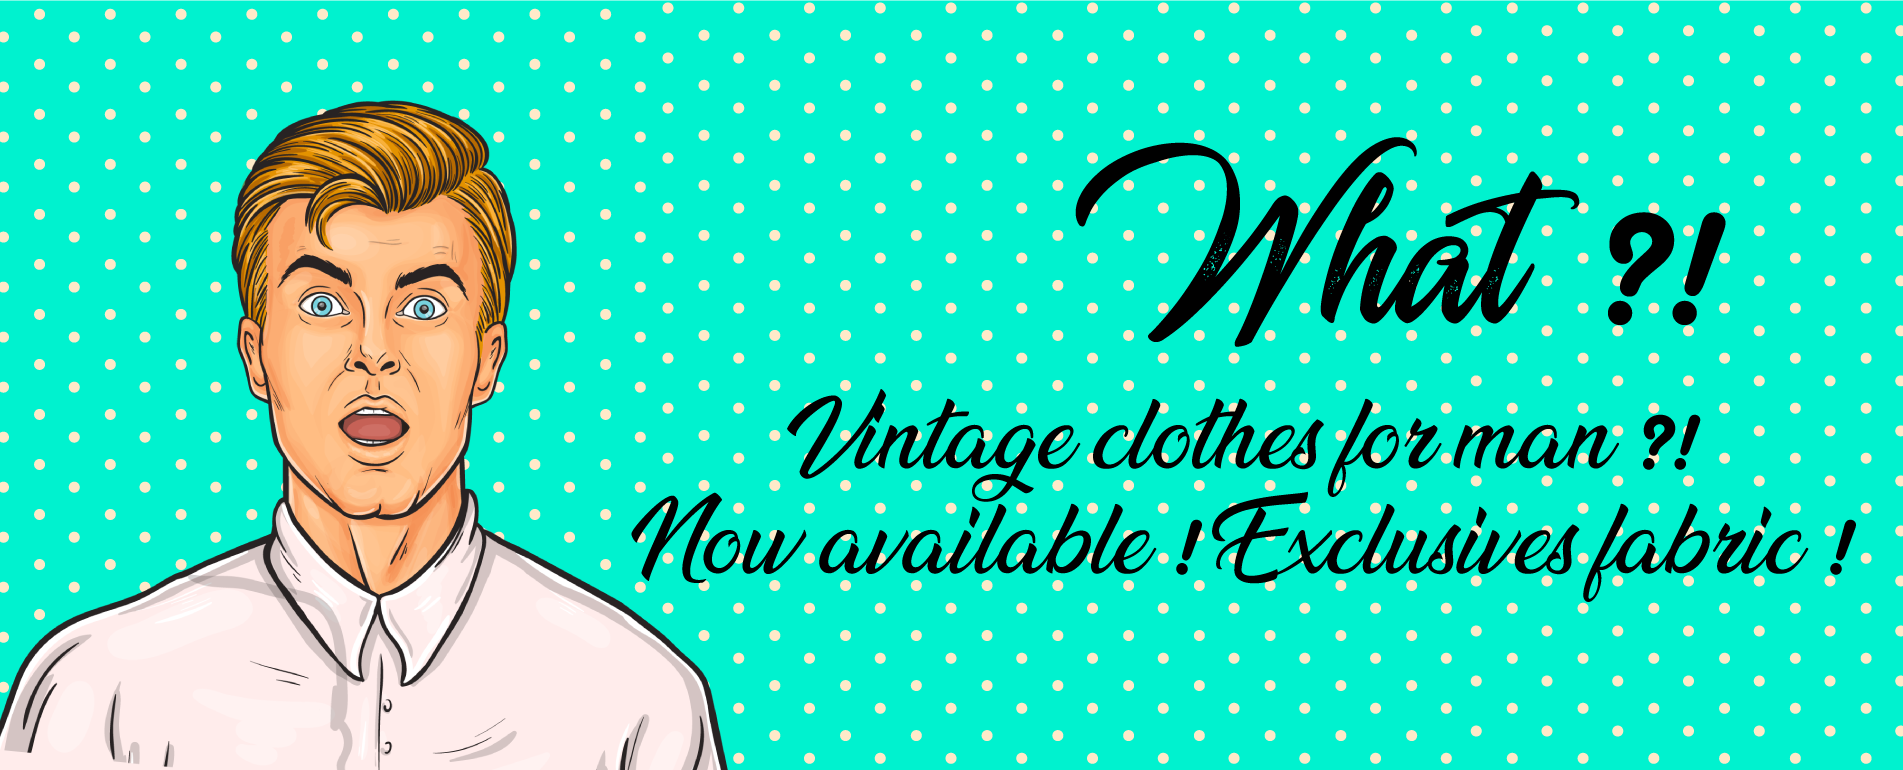 Unique and original vintage clothes for man